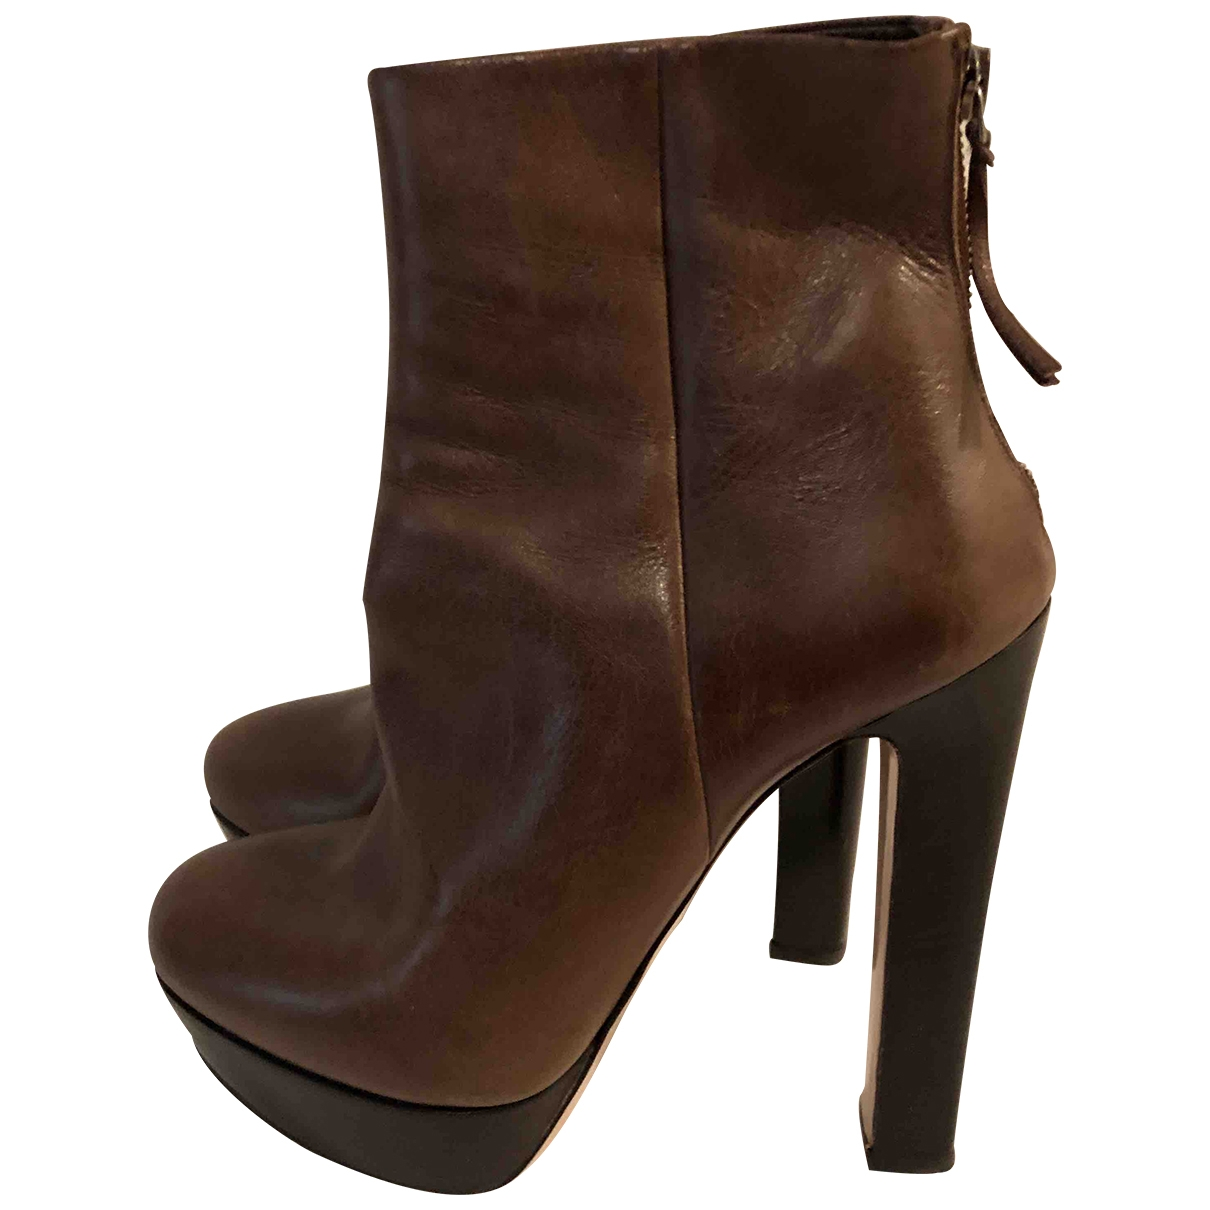 Miu Miu \N Brown Leather Ankle boots for Women 39 EU